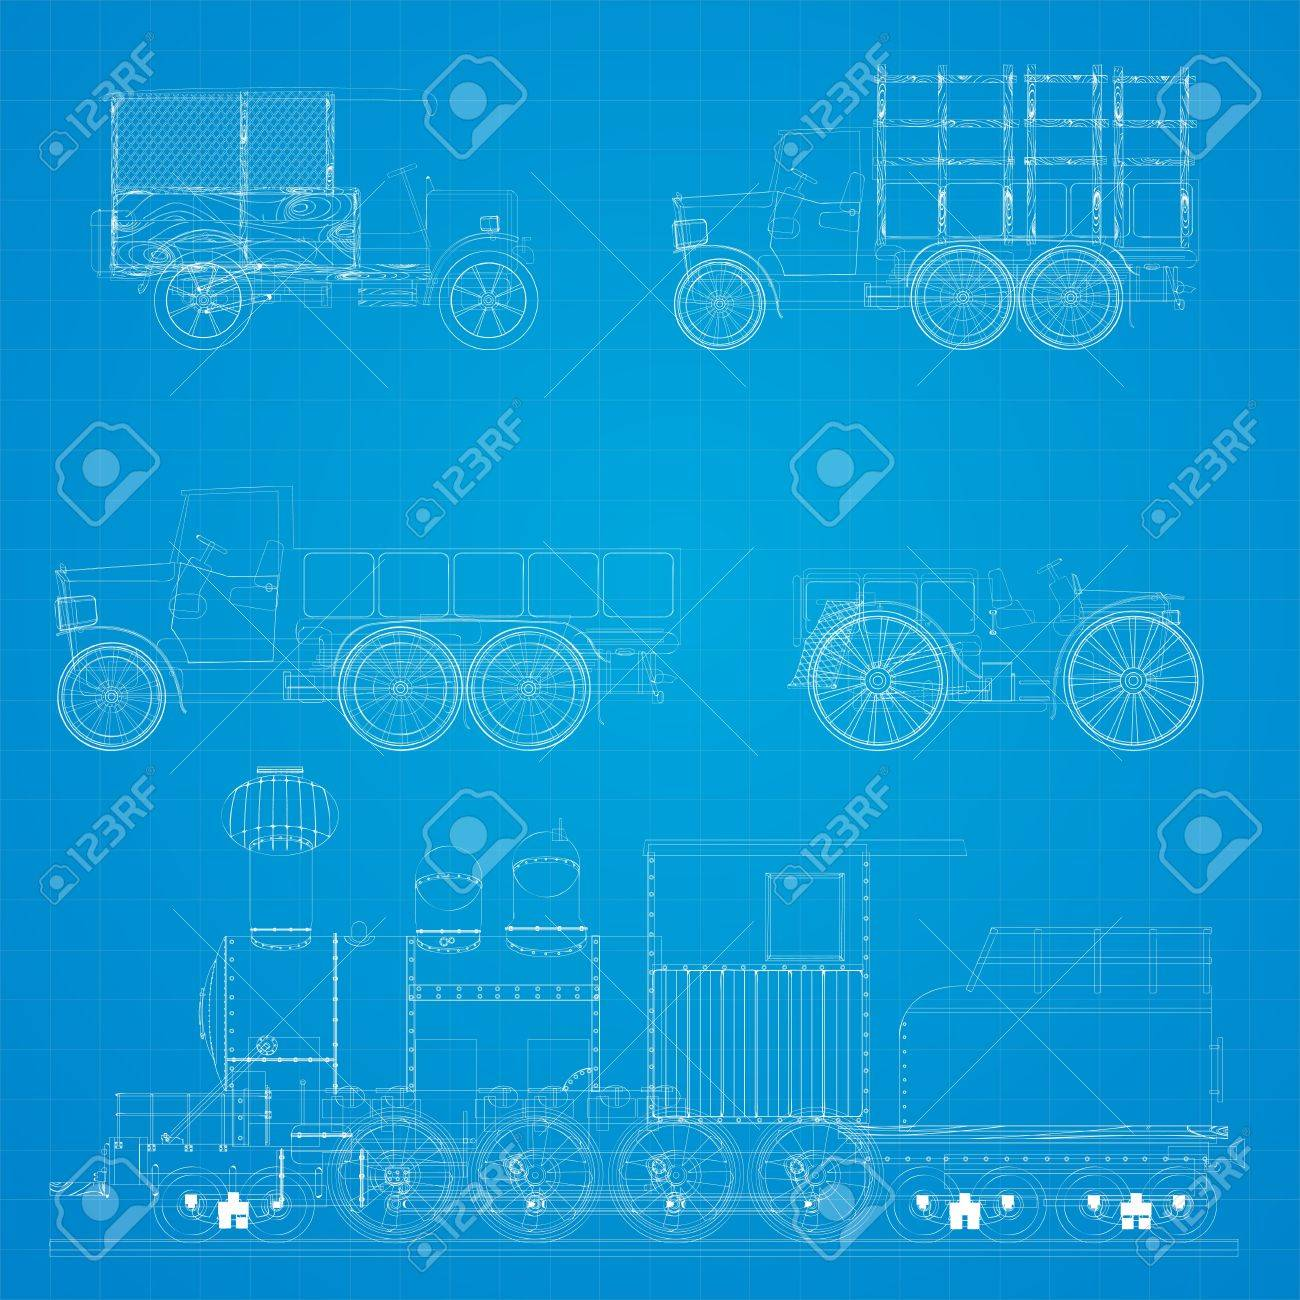 Old transportation vehicles and steam locomotive blueprint design old transportation vehicles and steam locomotive blueprint design stock vector 15512739 malvernweather Gallery